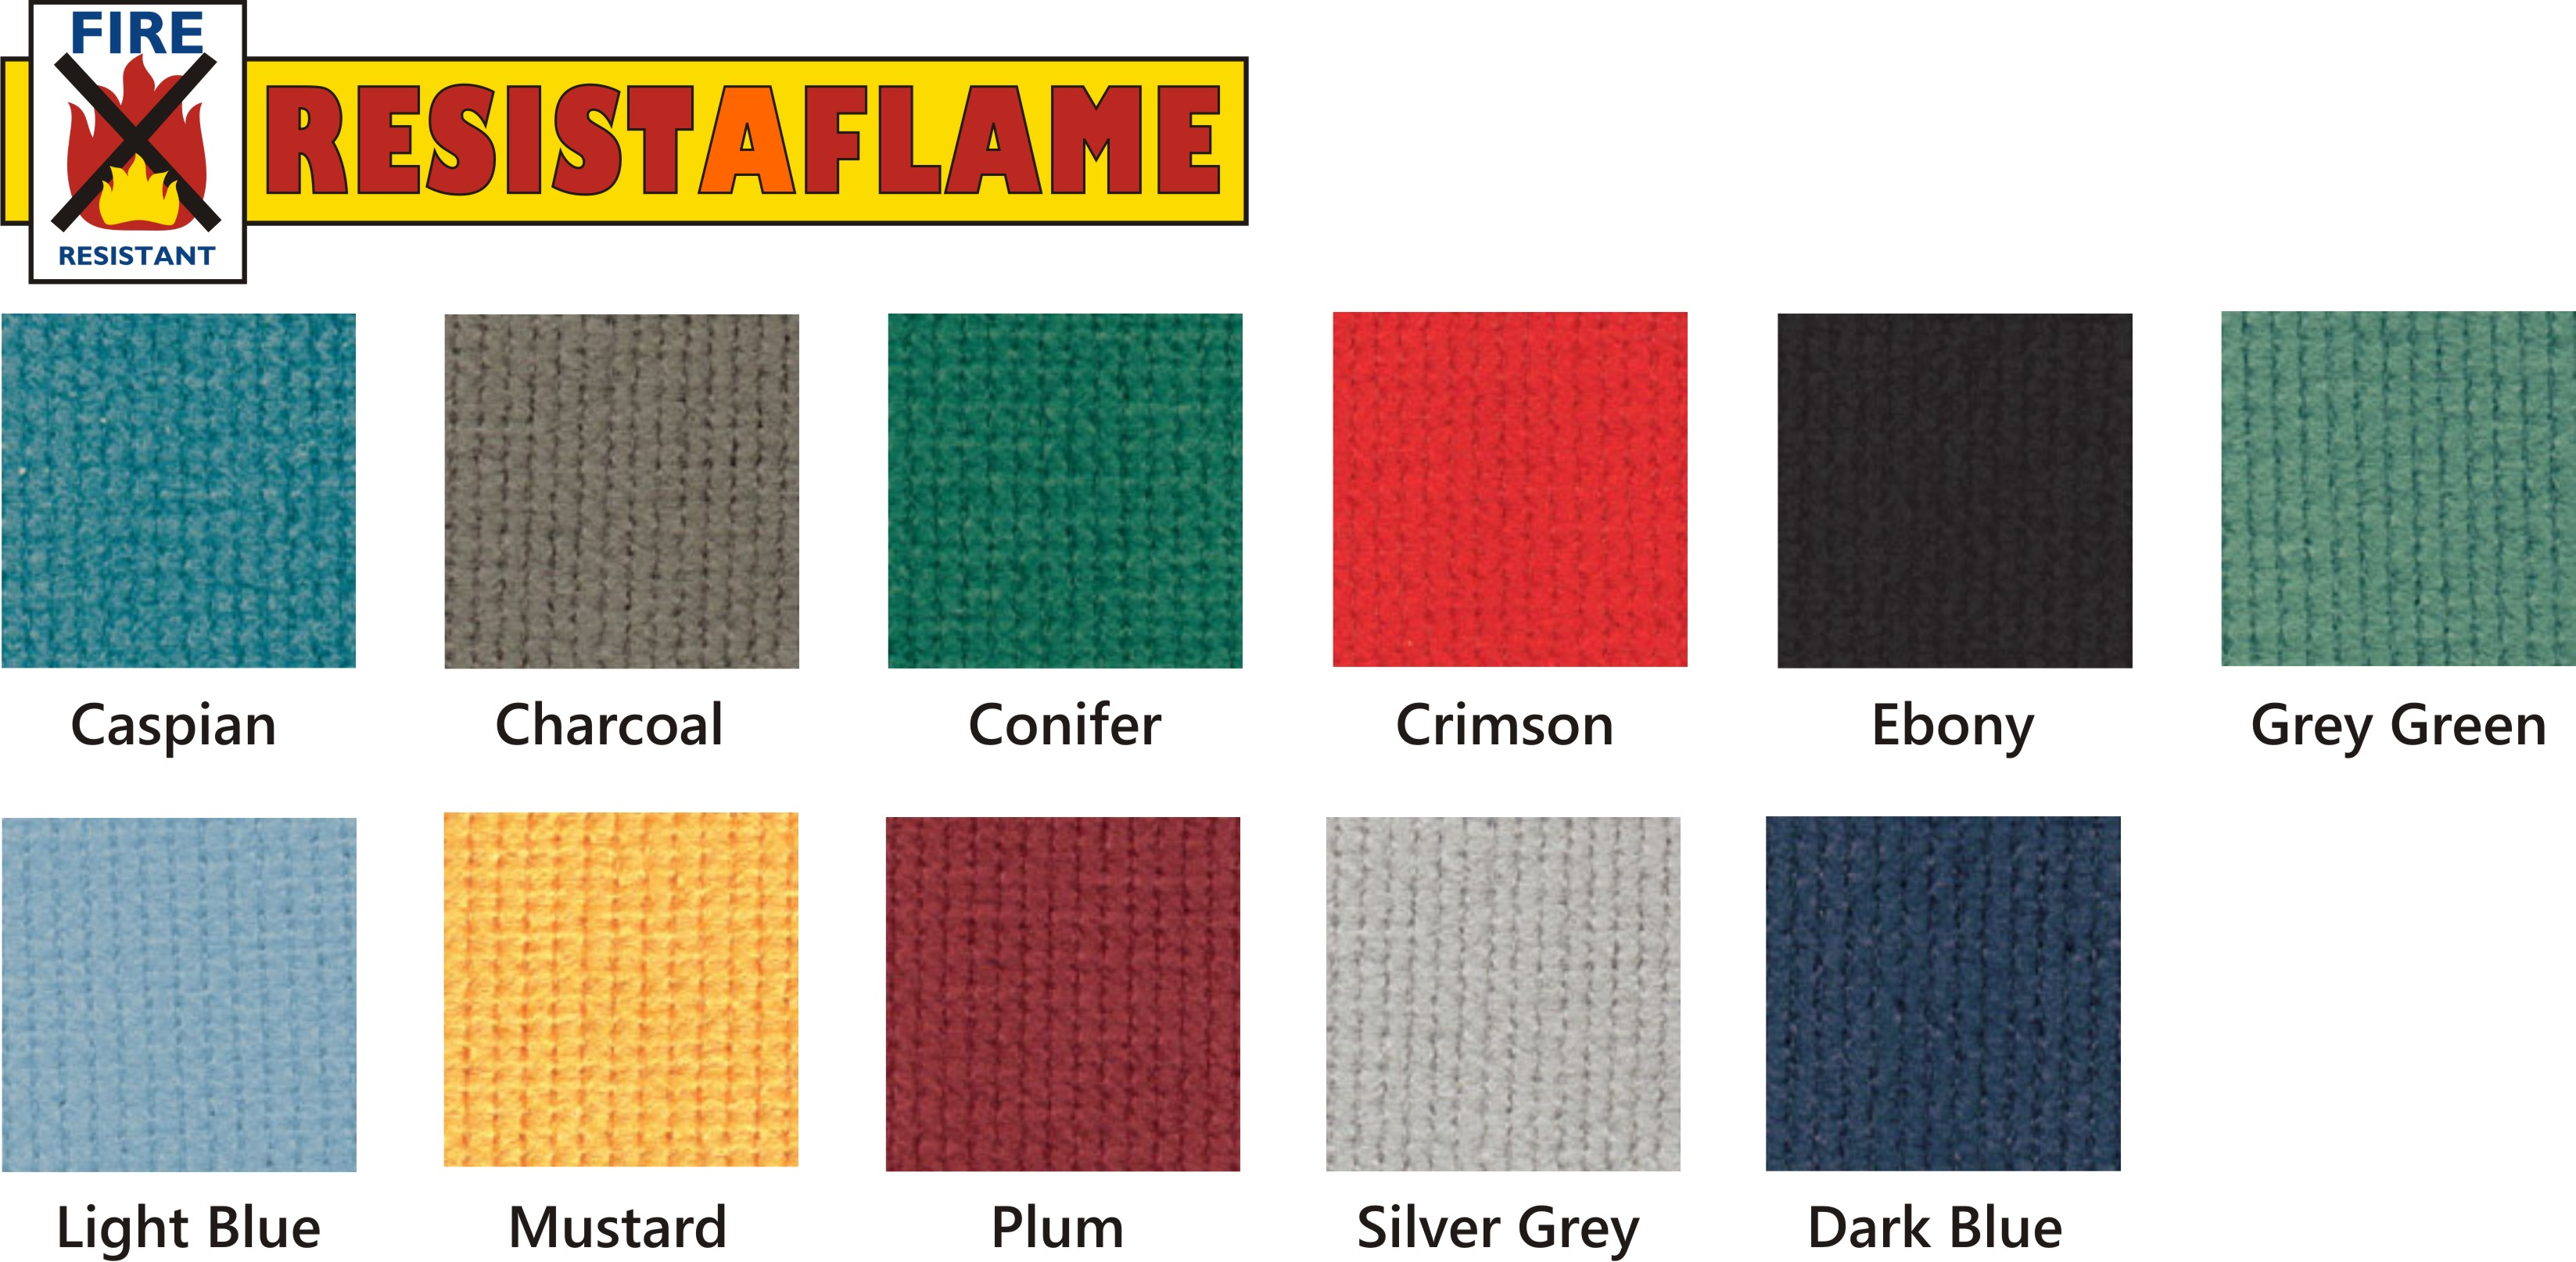 Resisst-A-Flame Fire Retardant Noticeboards